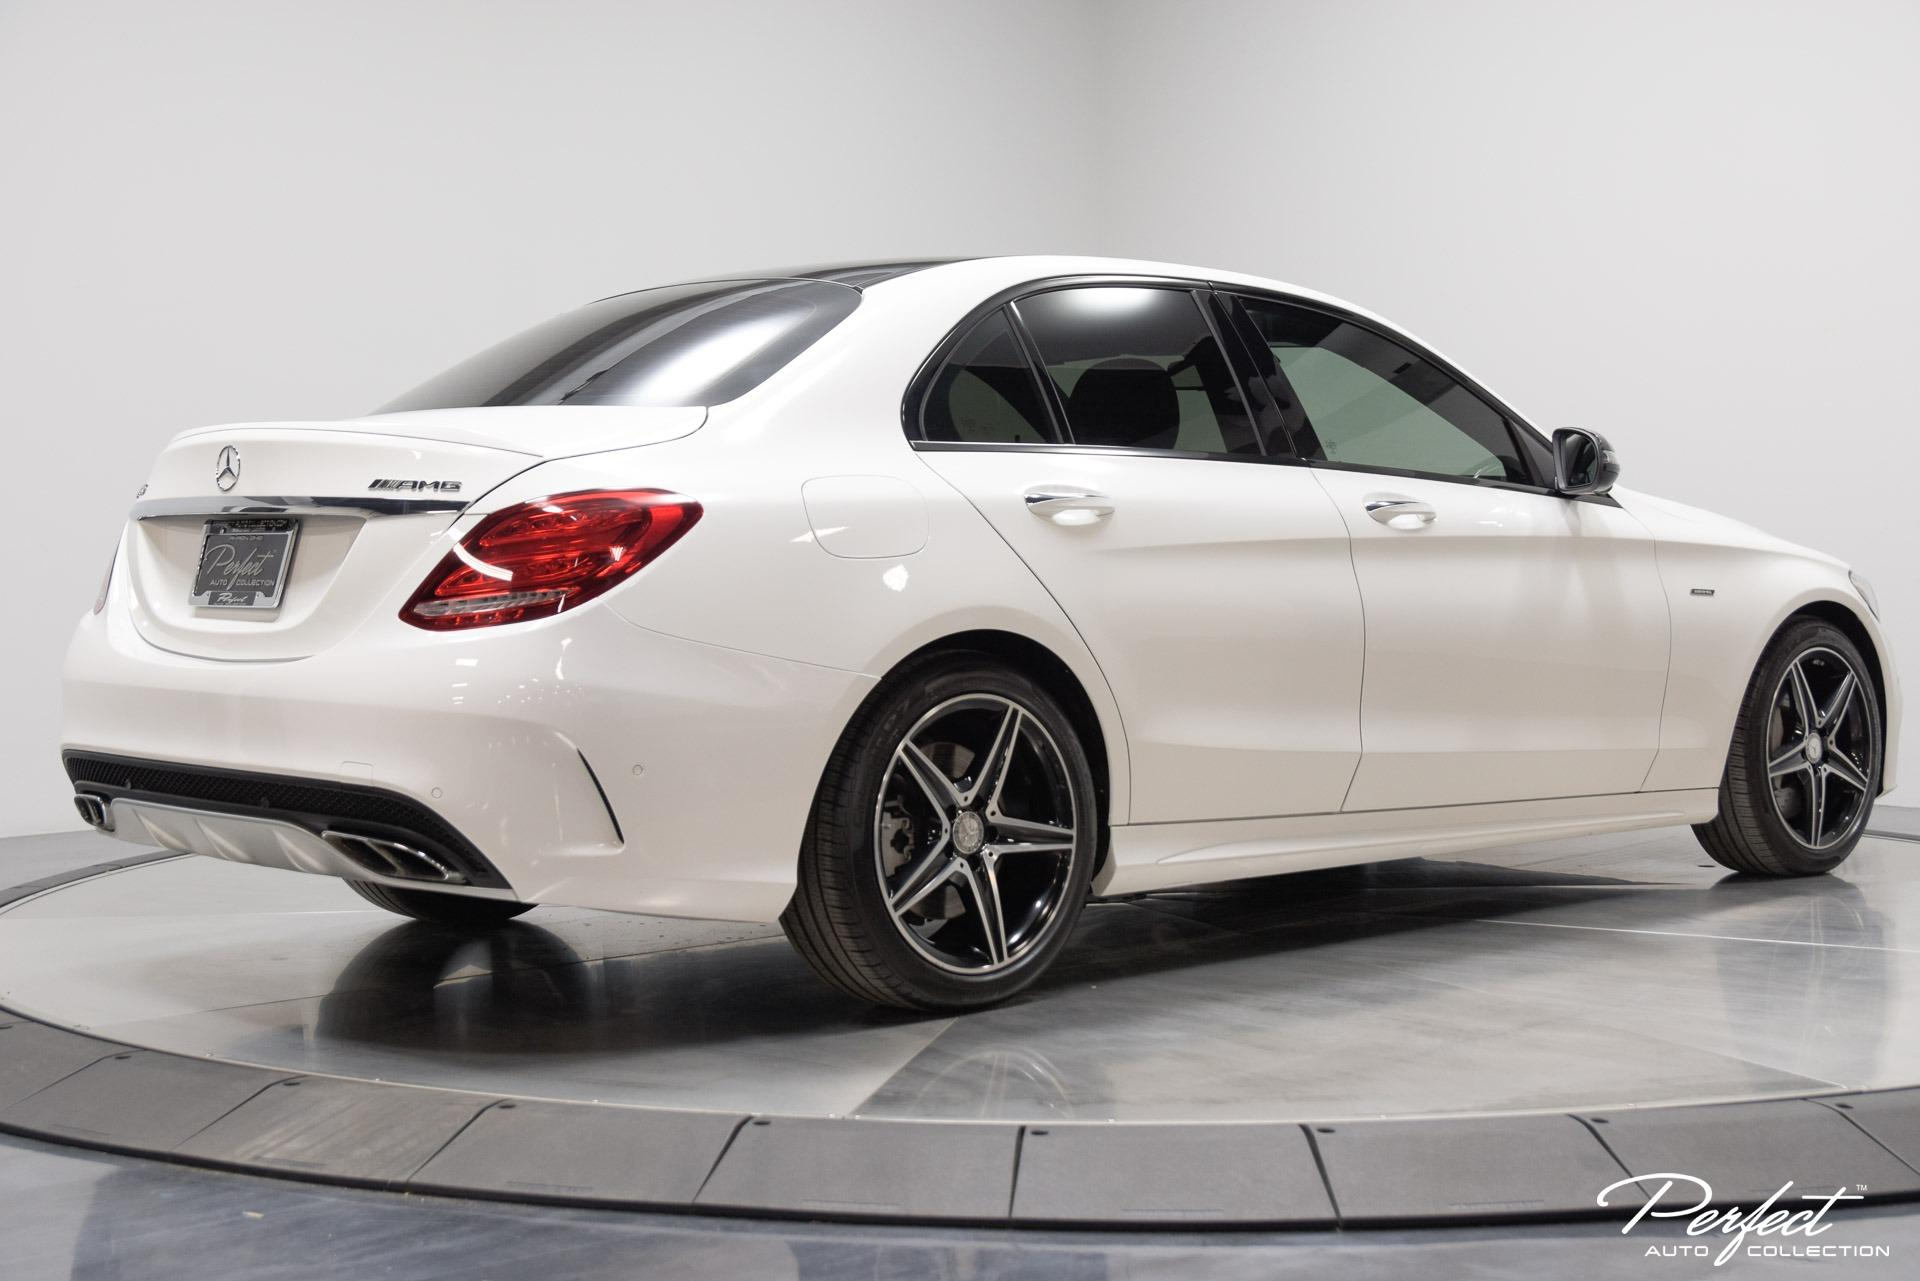 Used 2016 Mercedes-Benz C-Class C 450 AMG for sale $33,895 at Perfect Auto Collection in Akron OH 44310 4